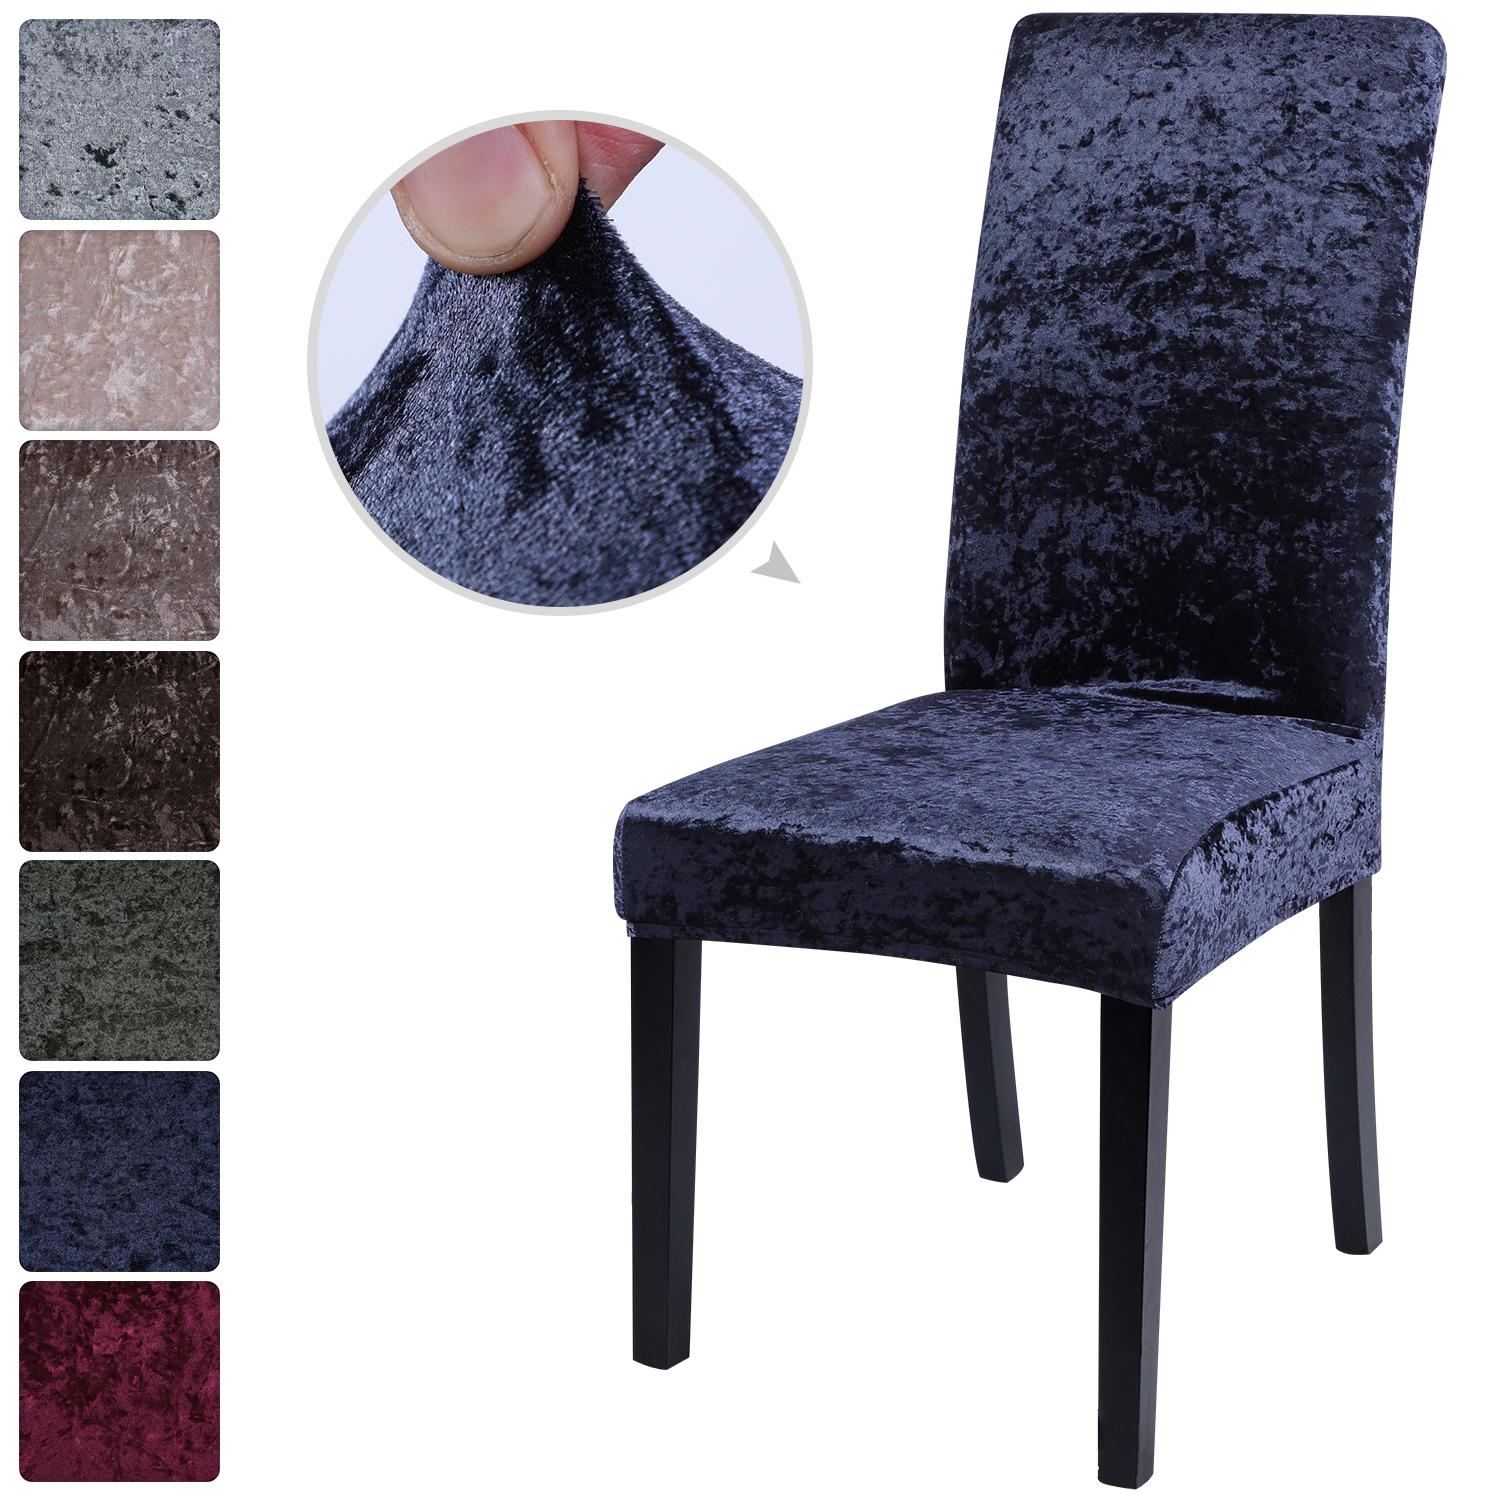 Hearty Junejour   Elastic Dining Chair Velvet Anti-dust Cover Stretch Slipcovers Protect Home Furniture Decor 1/2/4/6pc For Dining Room Sophisticated Technologies